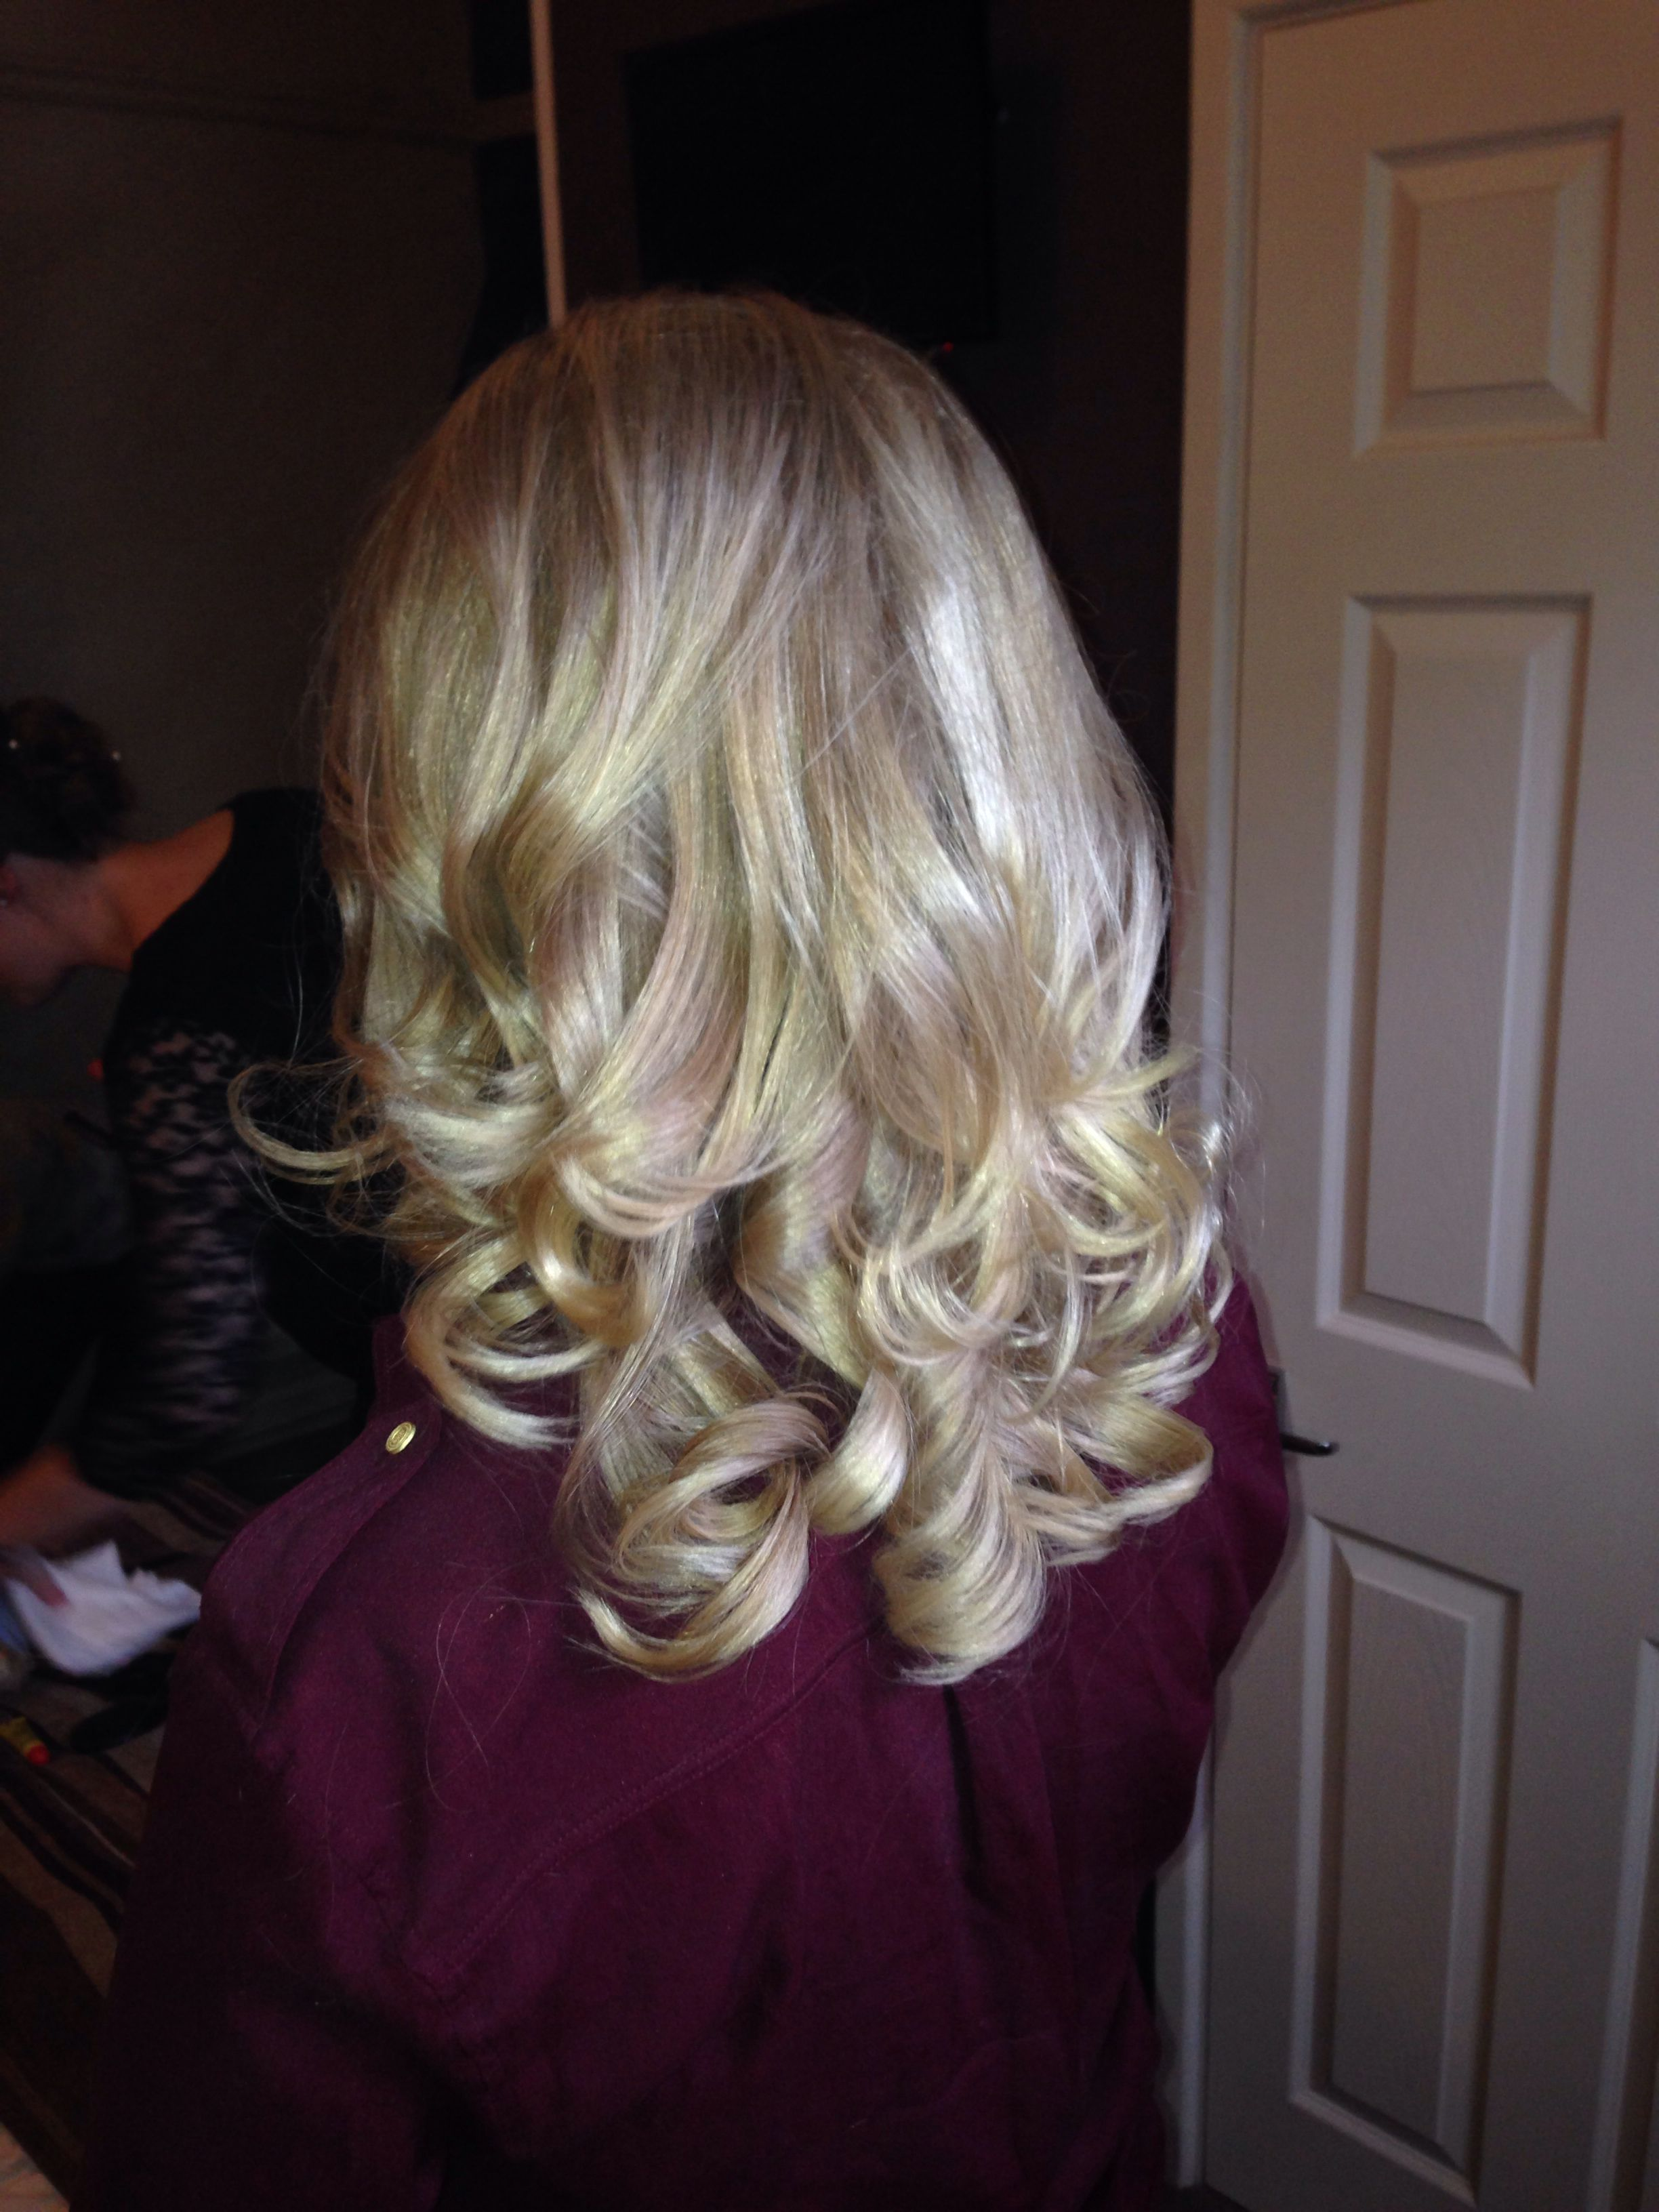 Pin by Kelly Norge on hair | Pinterest